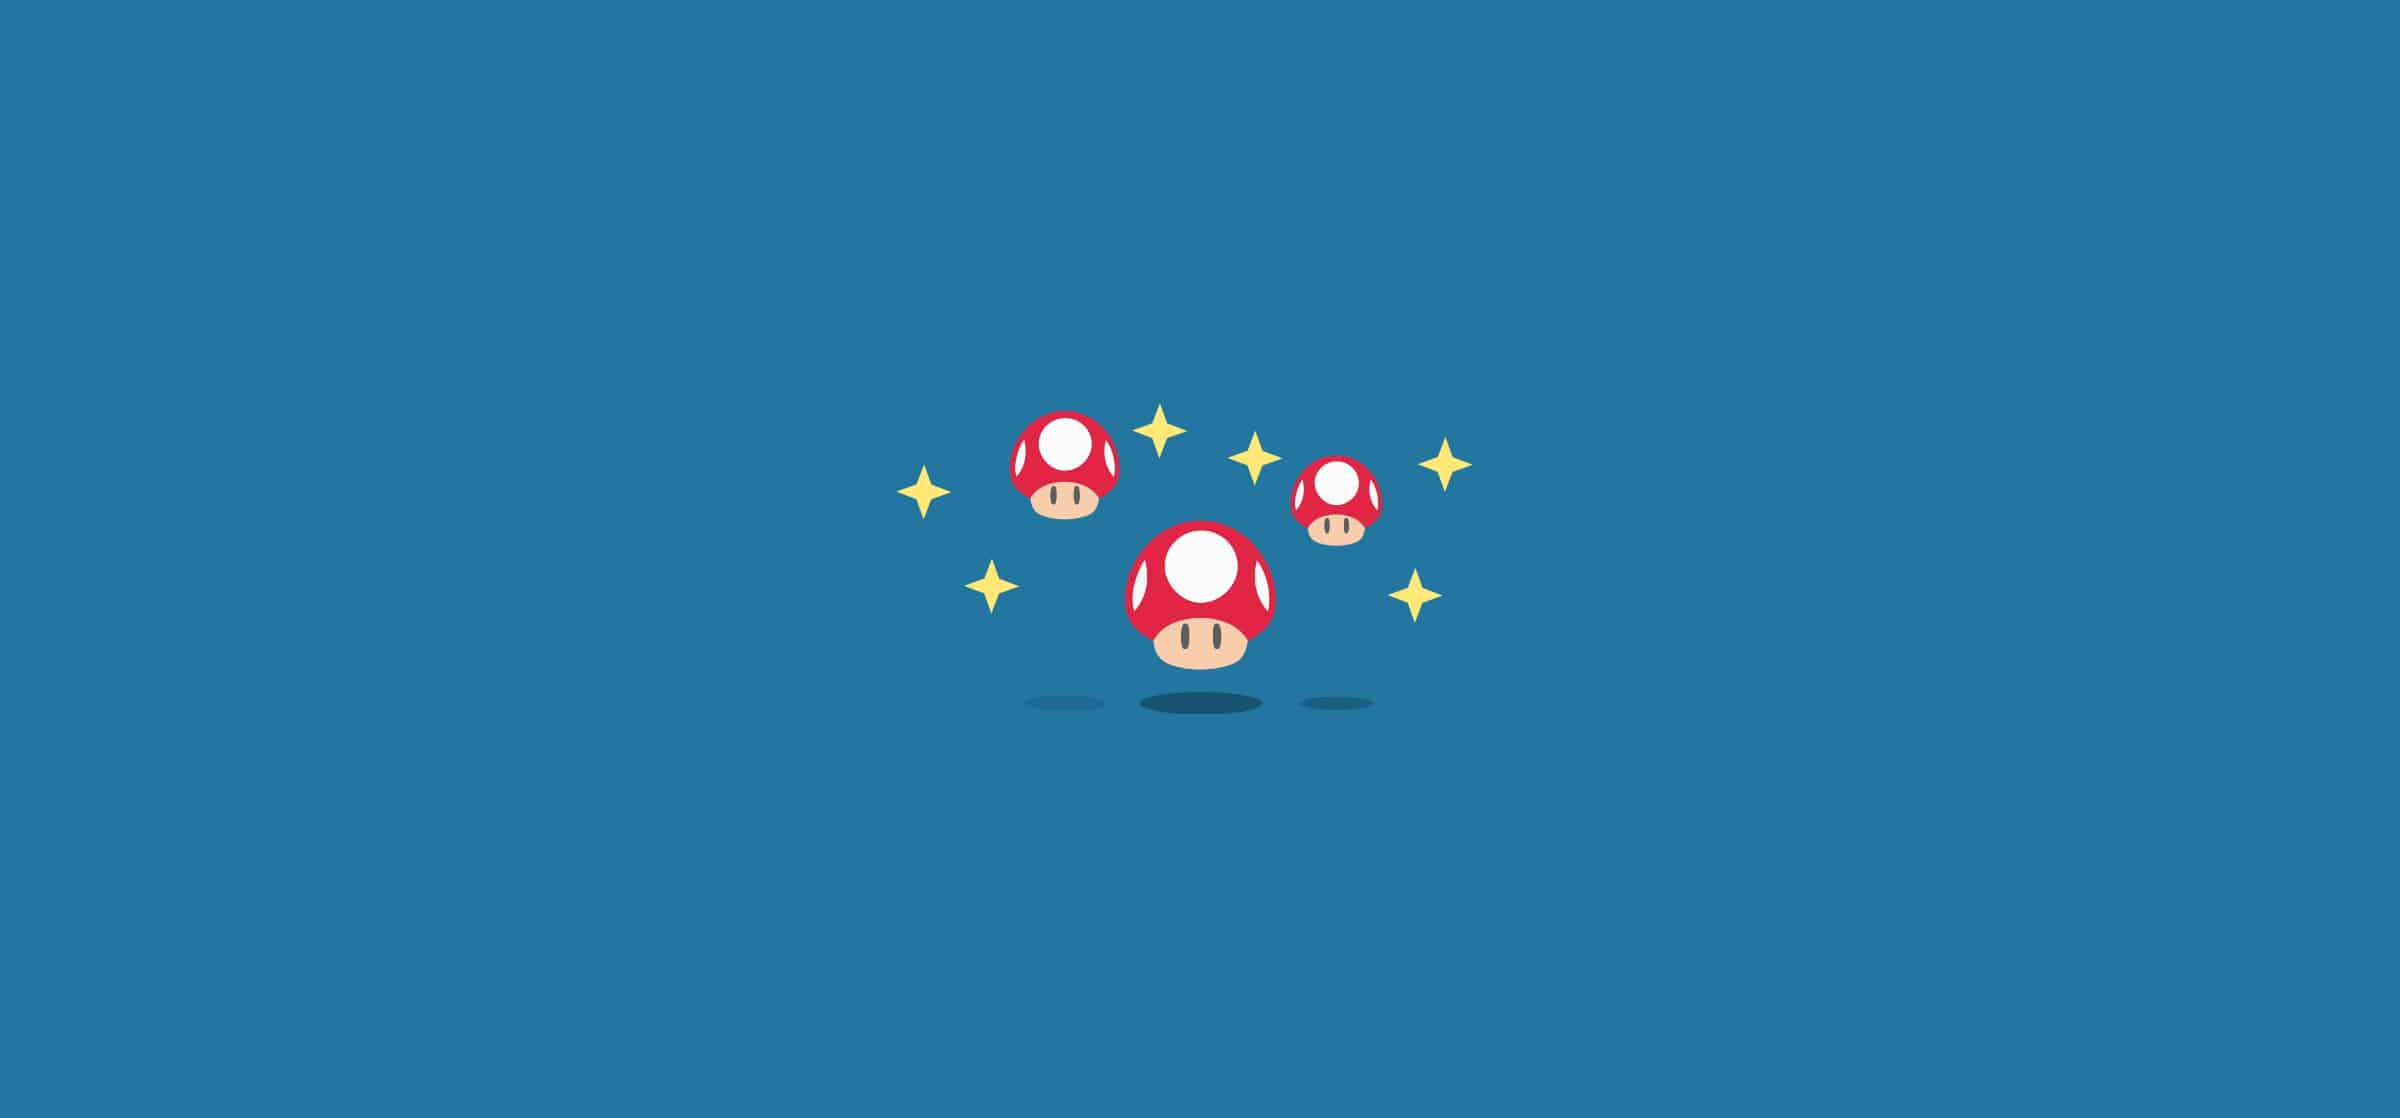 Red mushrooms from Mario Brothers, representing the best Trello Power-Ups